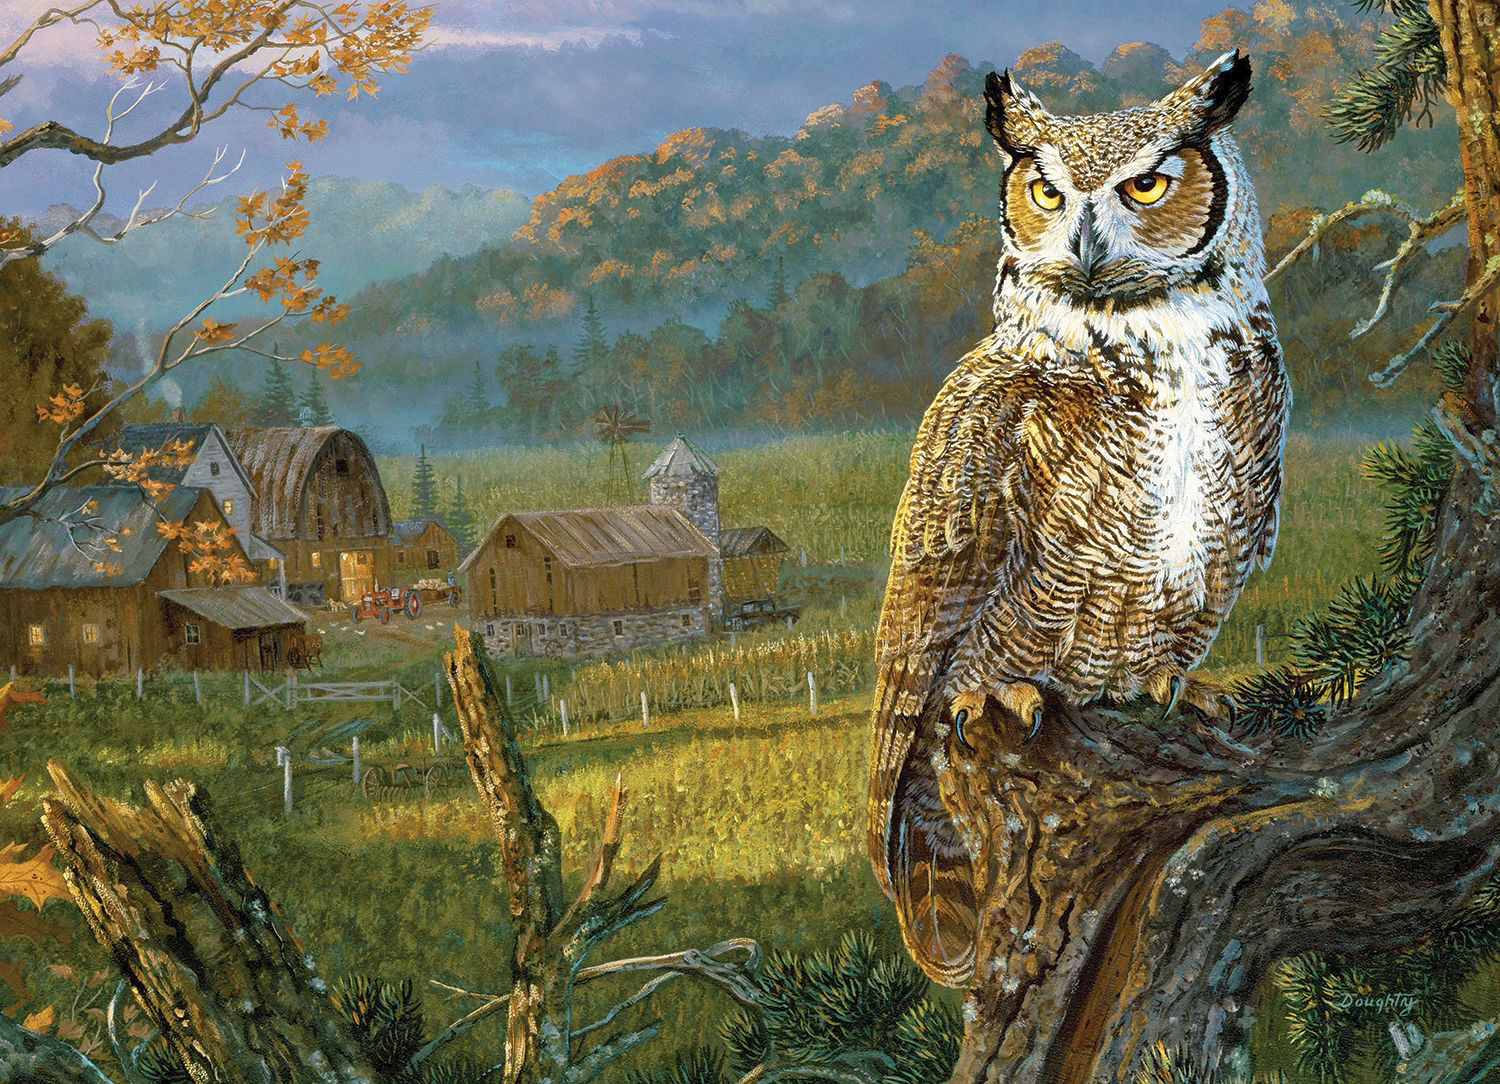 Edge of the Night Countryside Jigsaw Puzzle